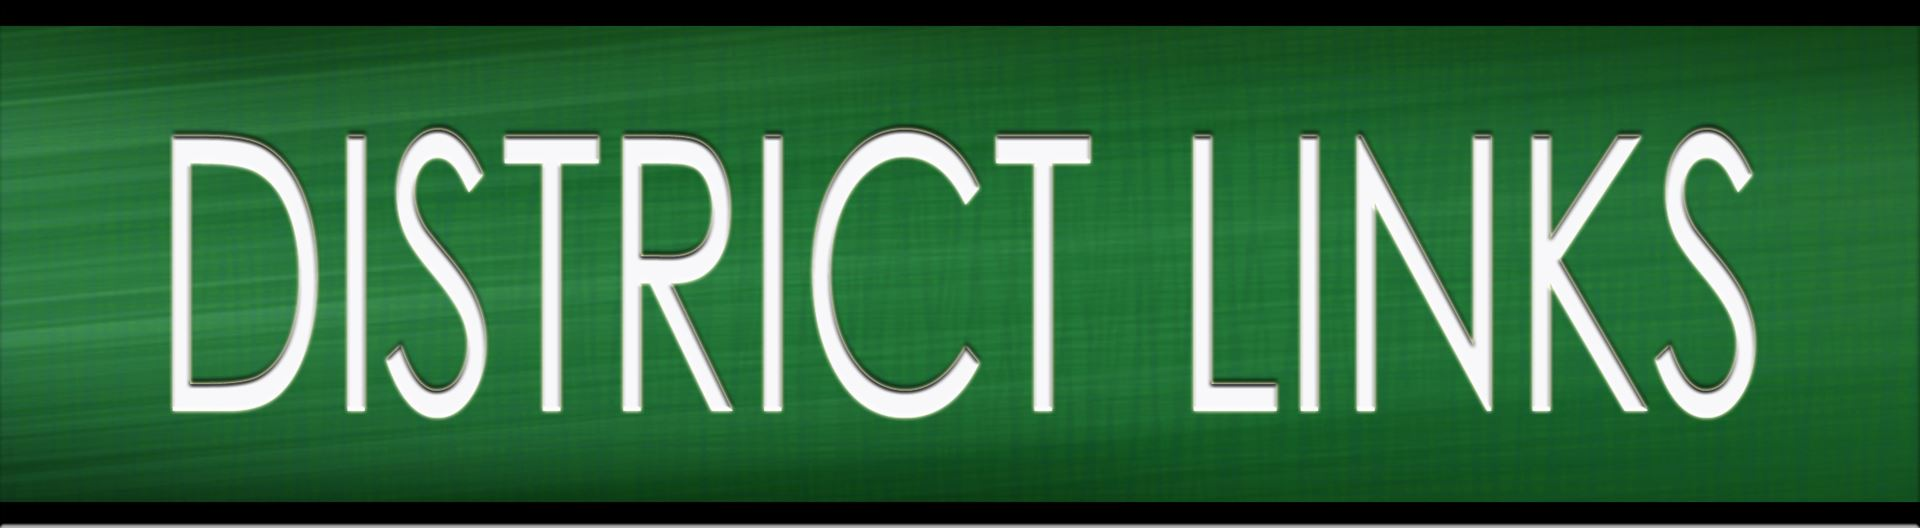 District Links